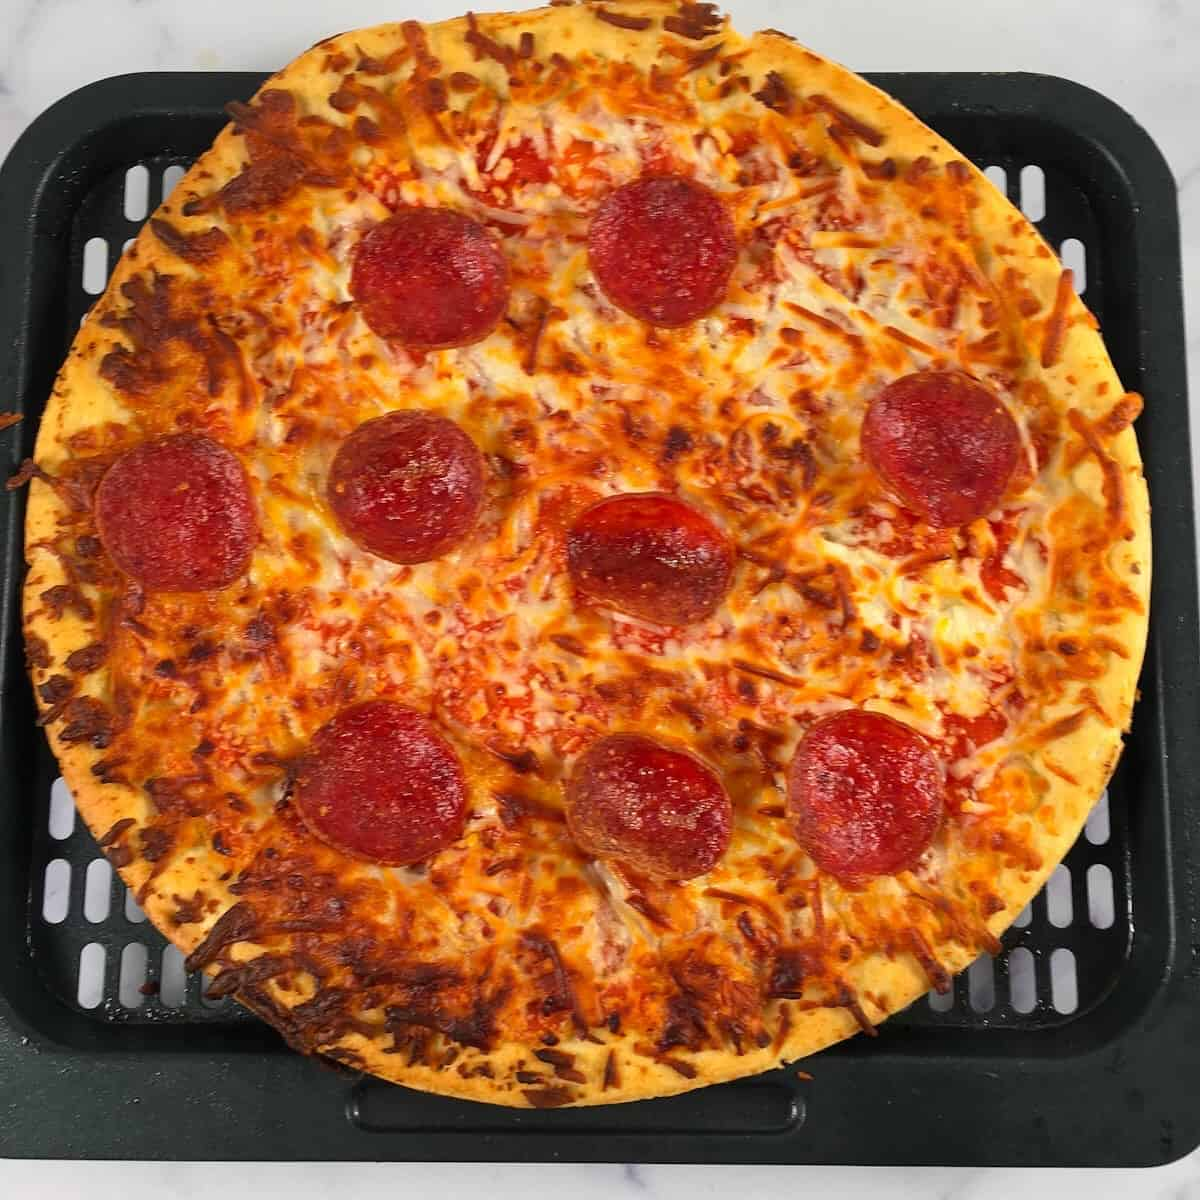 cooked pepperoni pizza